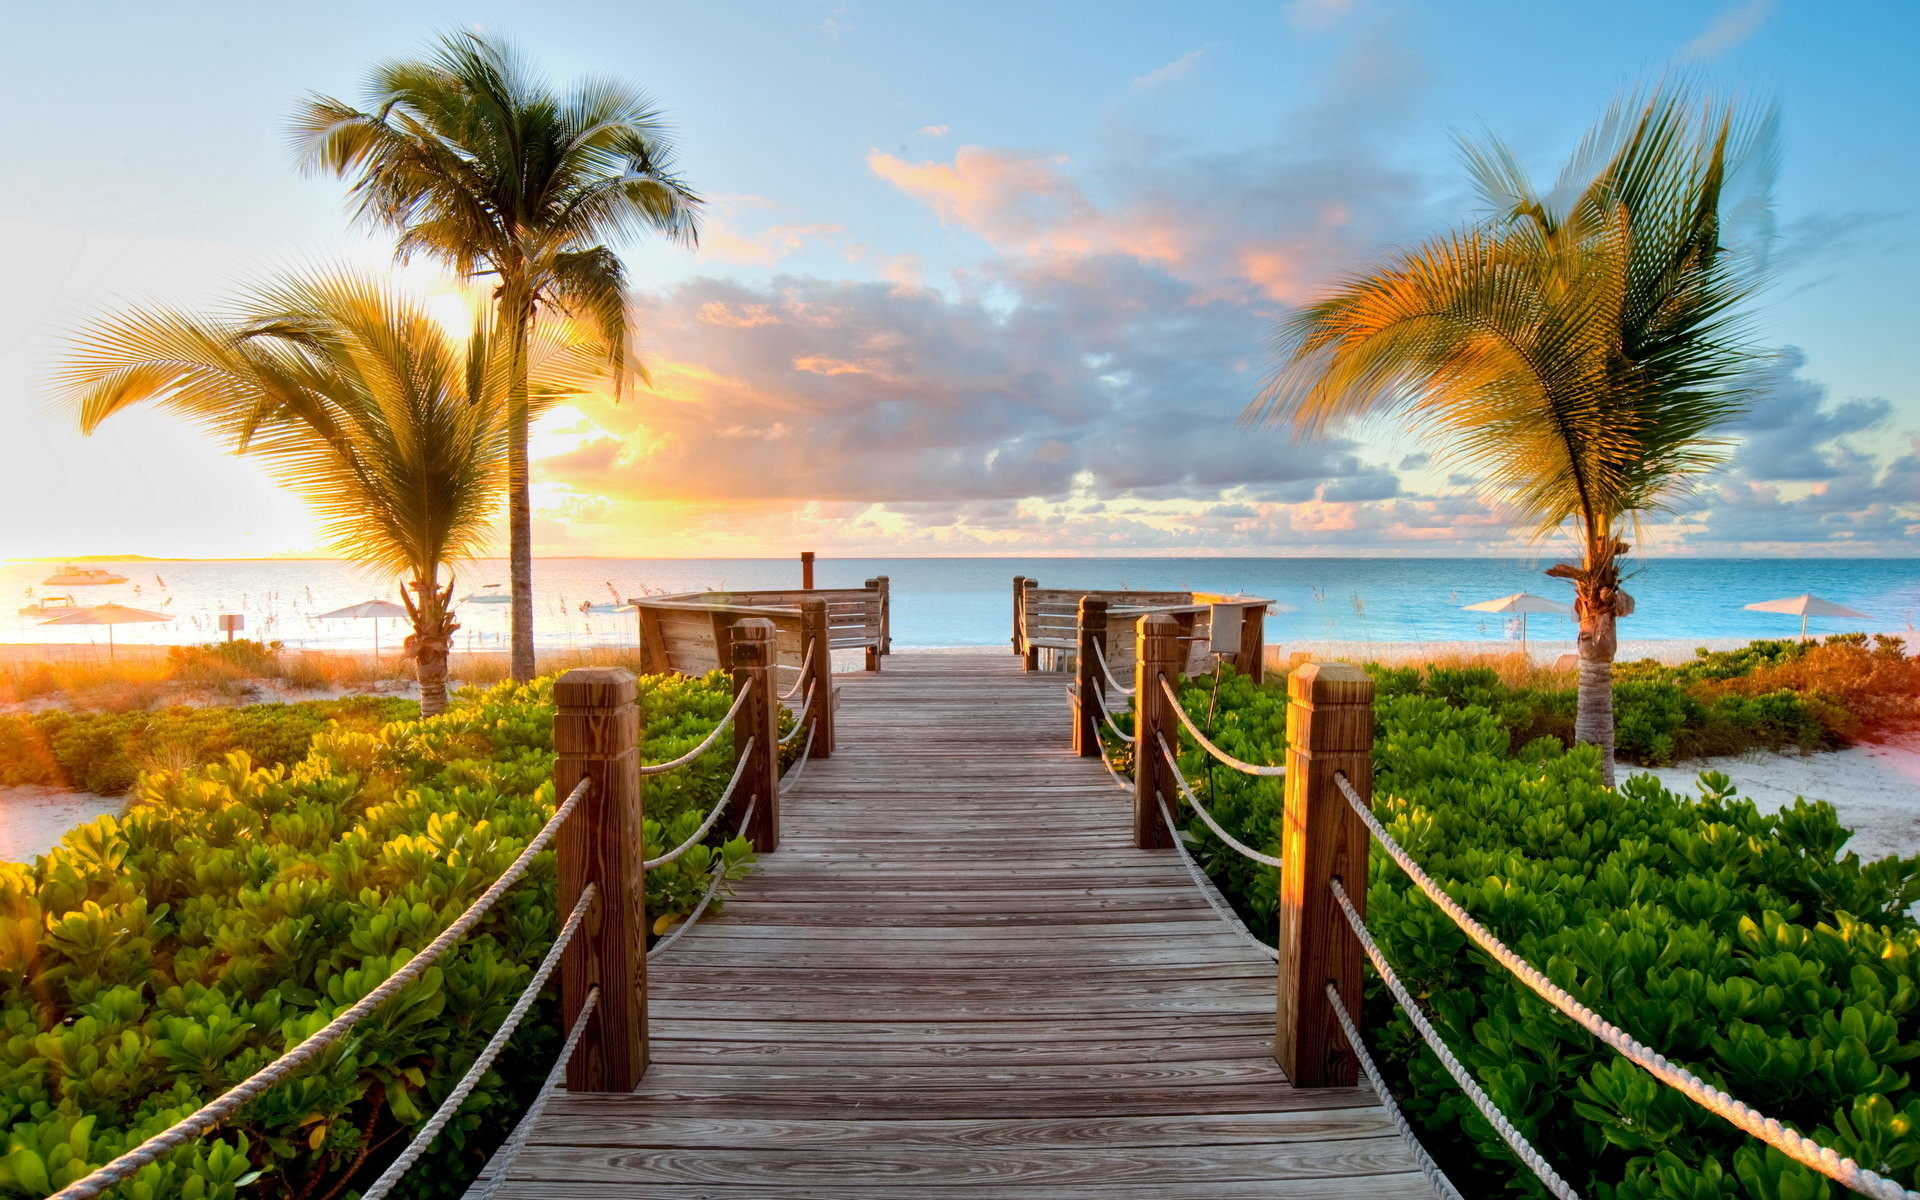 Beautiful background images 64 images 1920x1200 tropical boardwalk beautiful background voltagebd Images